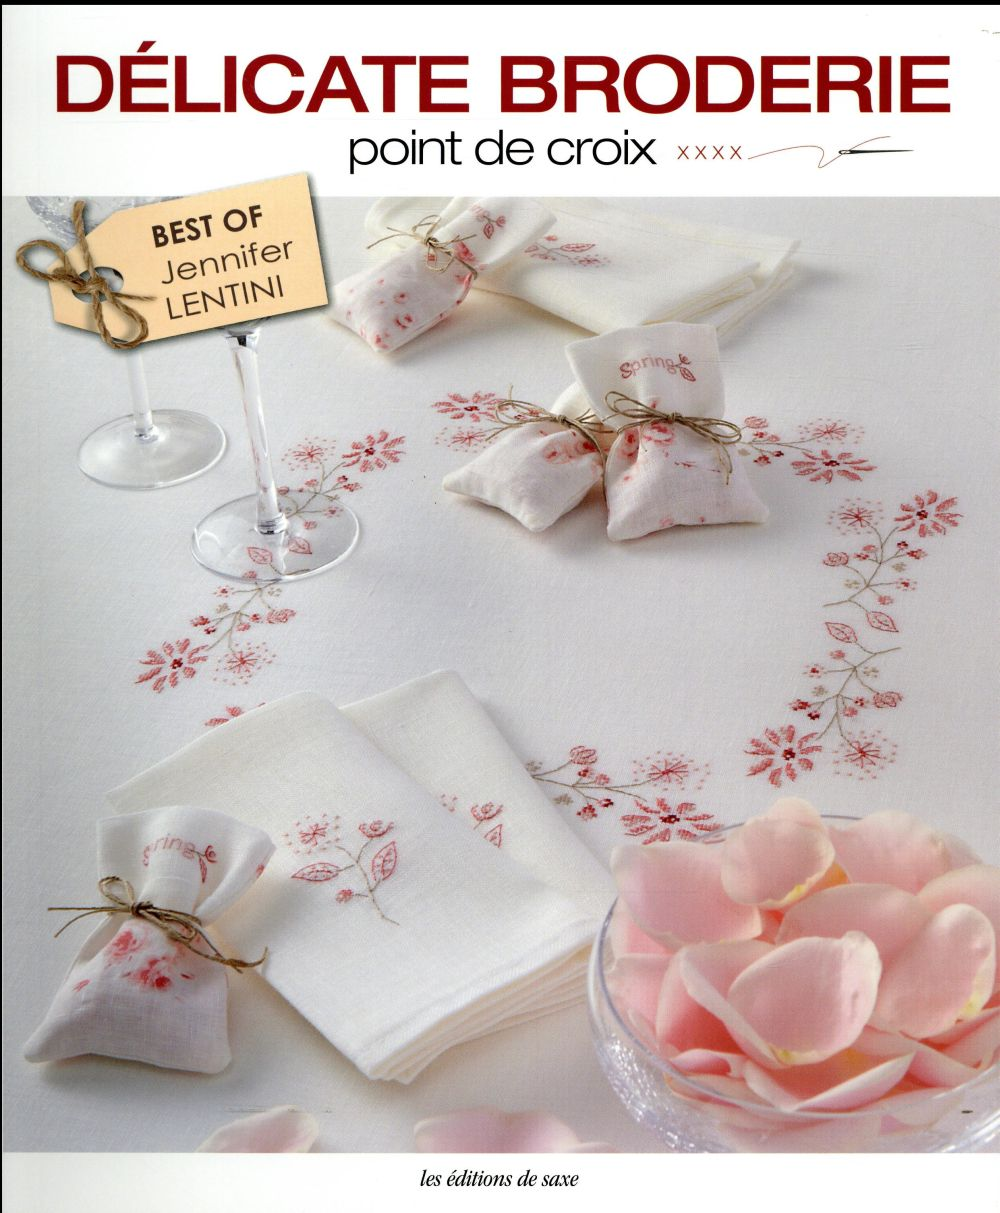 DELICATE BRODERIE, POINT DE CROIX